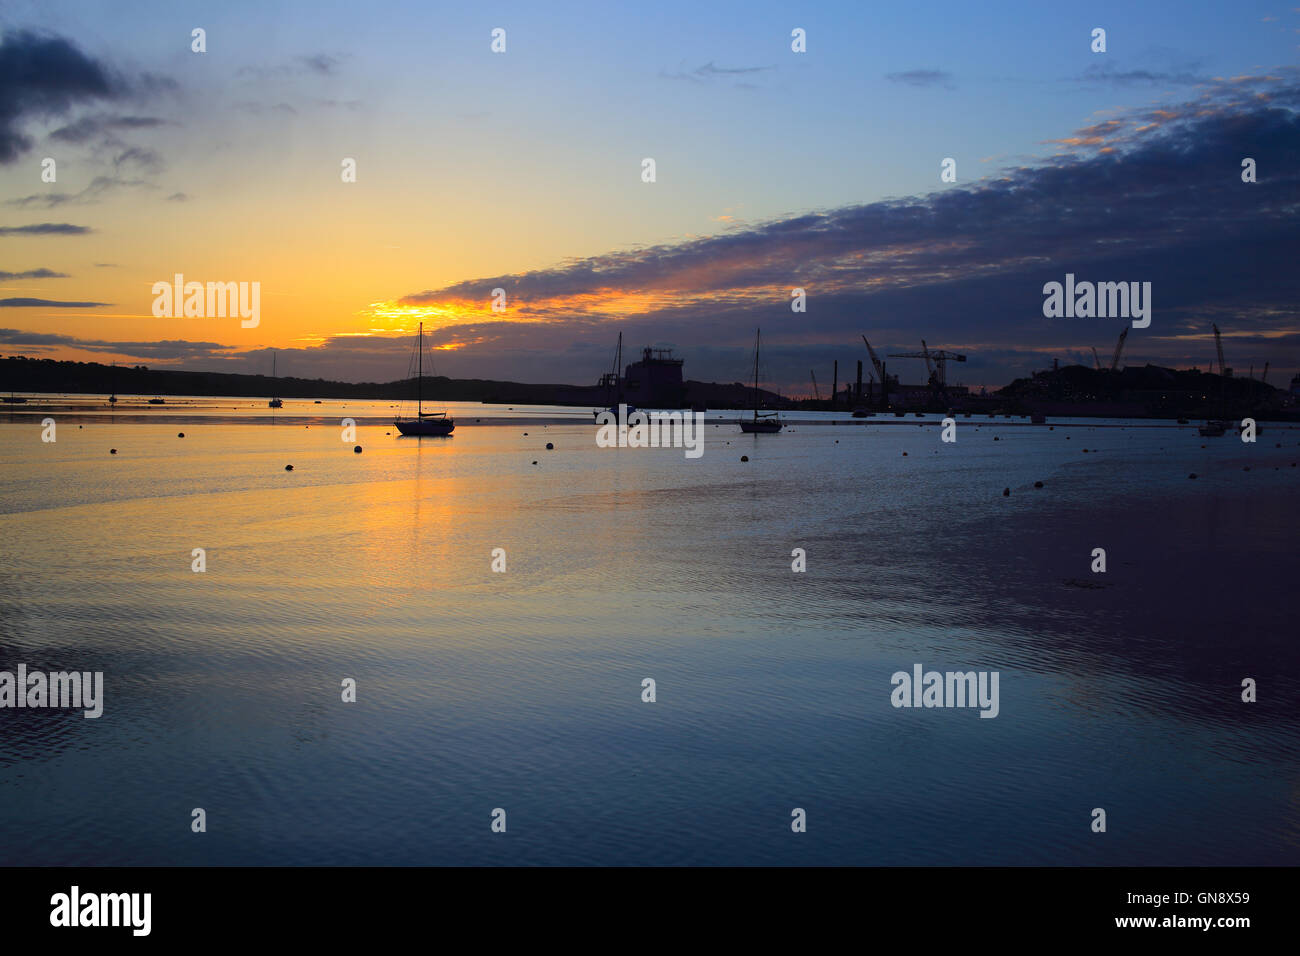 Sunrise over the Carrick Roads at high tide, Falmouth, Cornwall, England, UK. Stock Photo